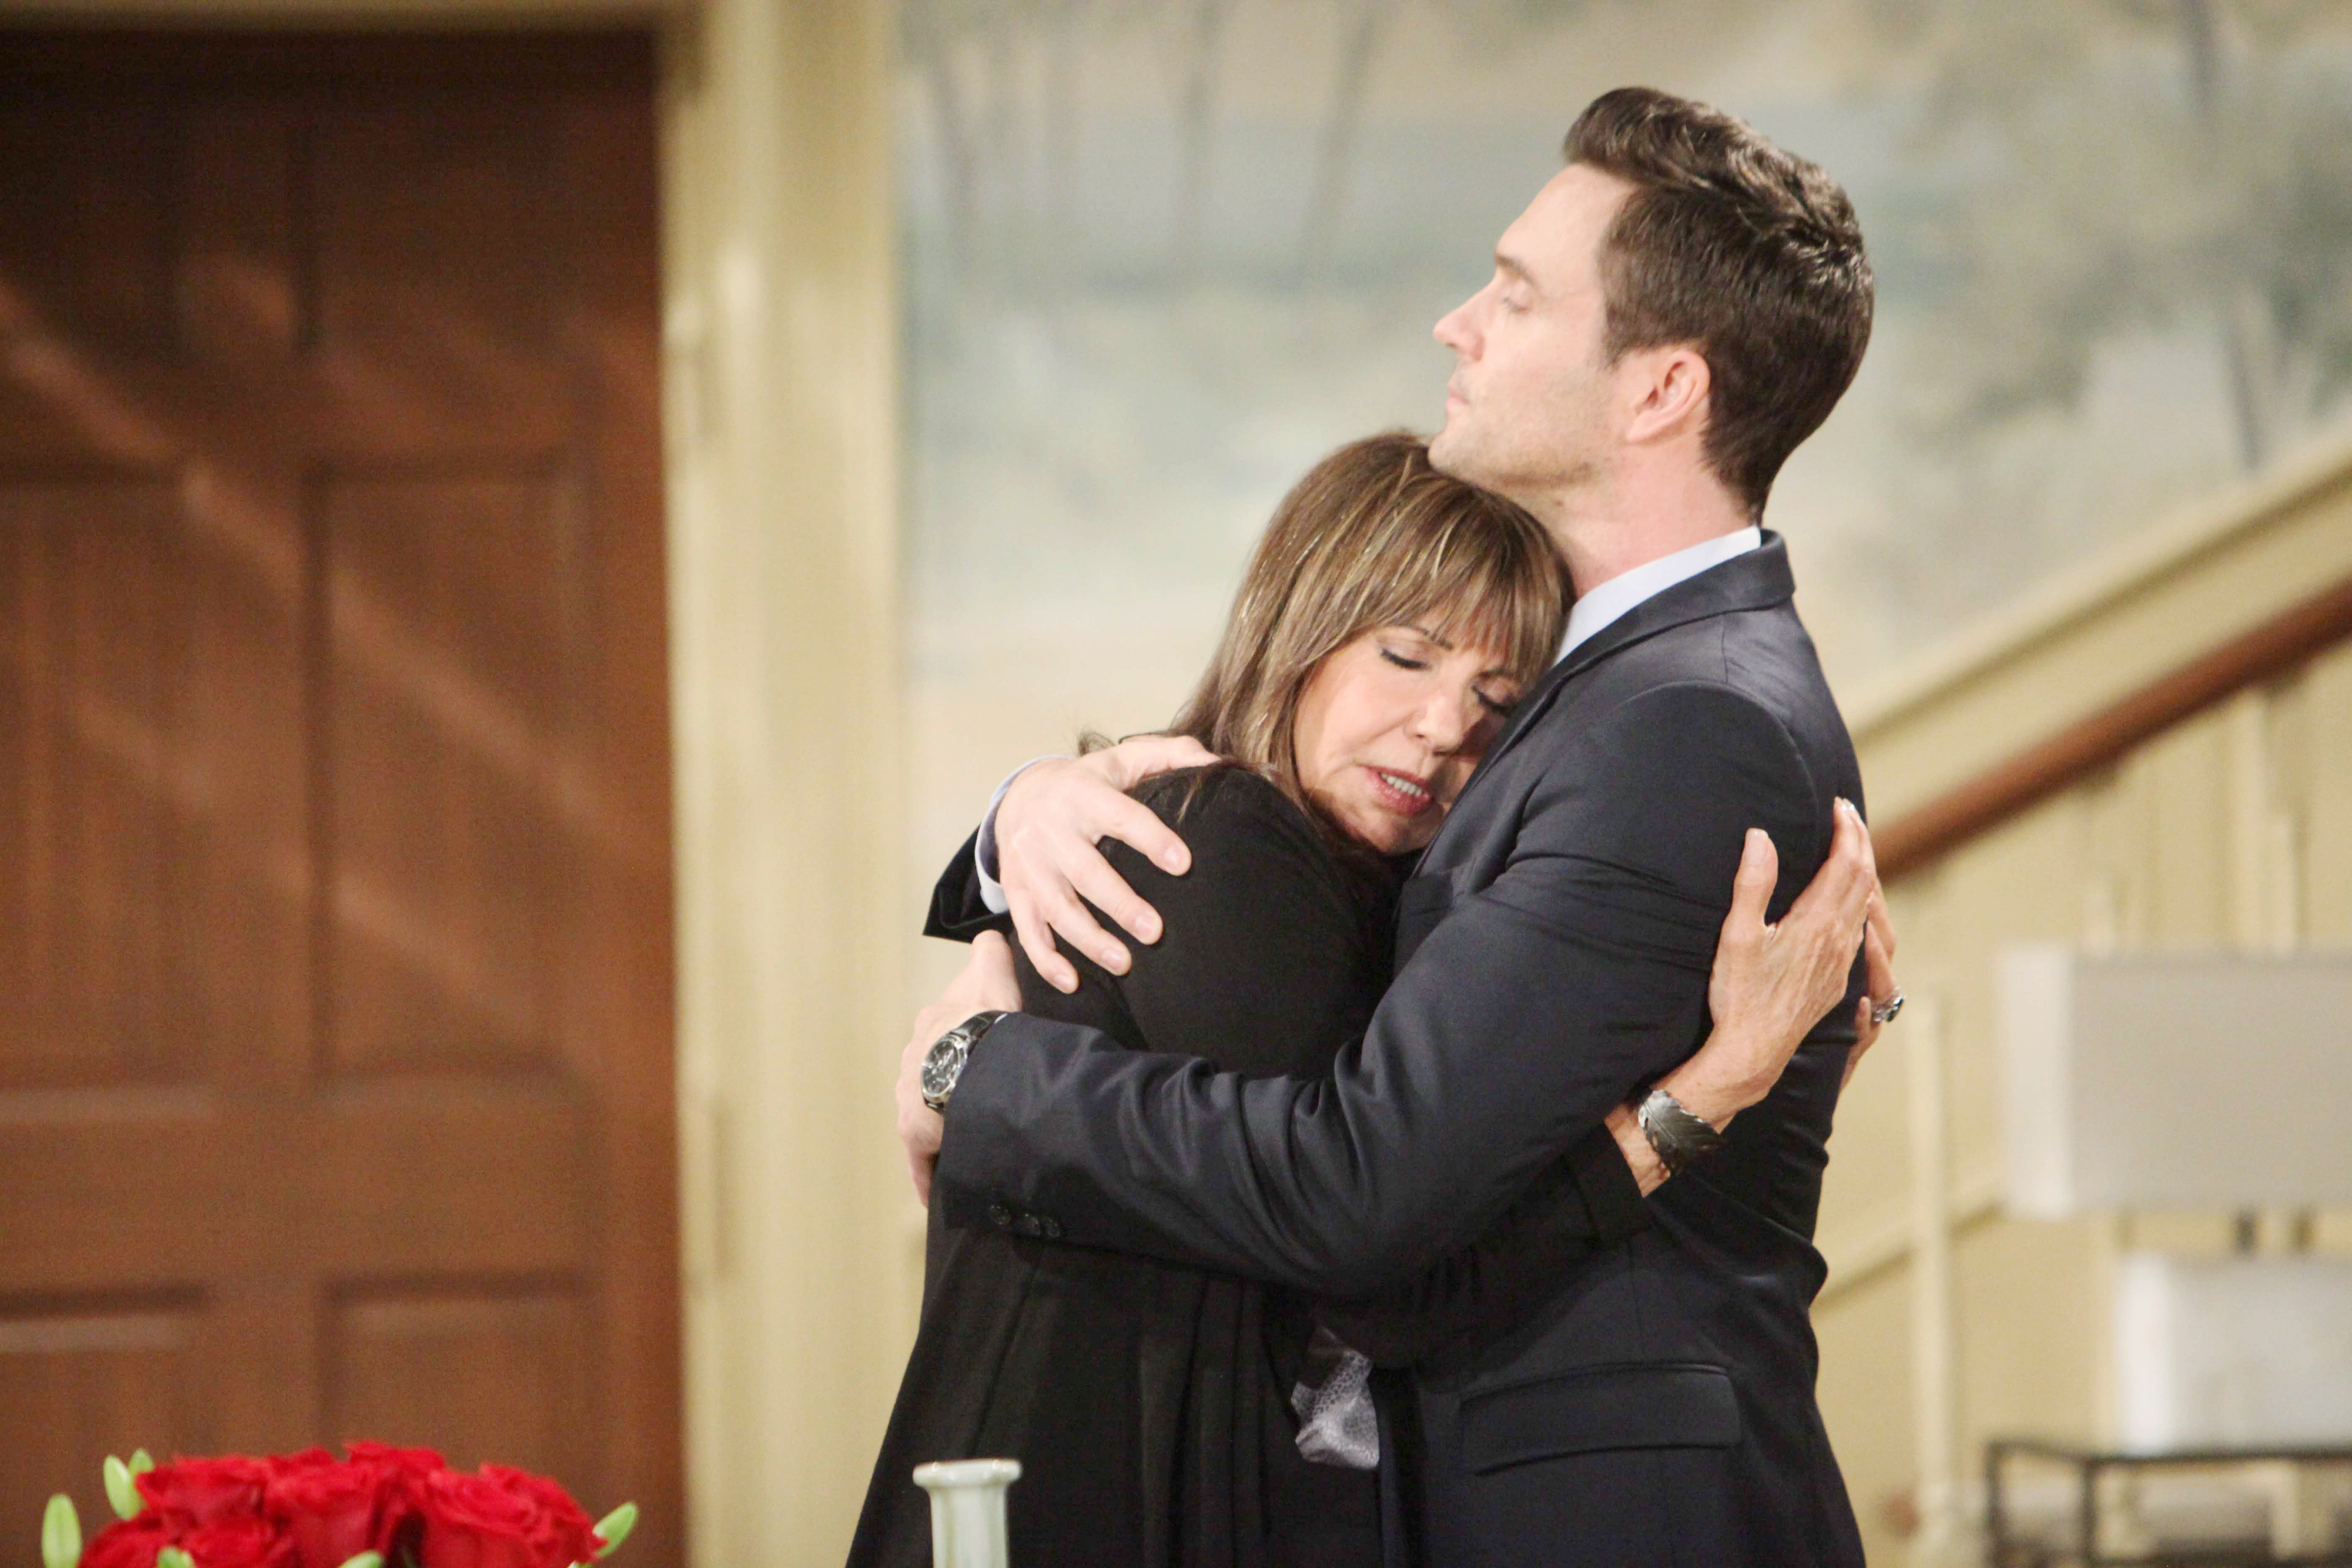 "Jess Walton, Daniel Goddard""The Young and the Restless"" Set CBS television CityLos Angeles05/23/17© Howard Wsie/jpistudios.com310-657-9661Episode # 11217U.S. Airdate 07/11/17"